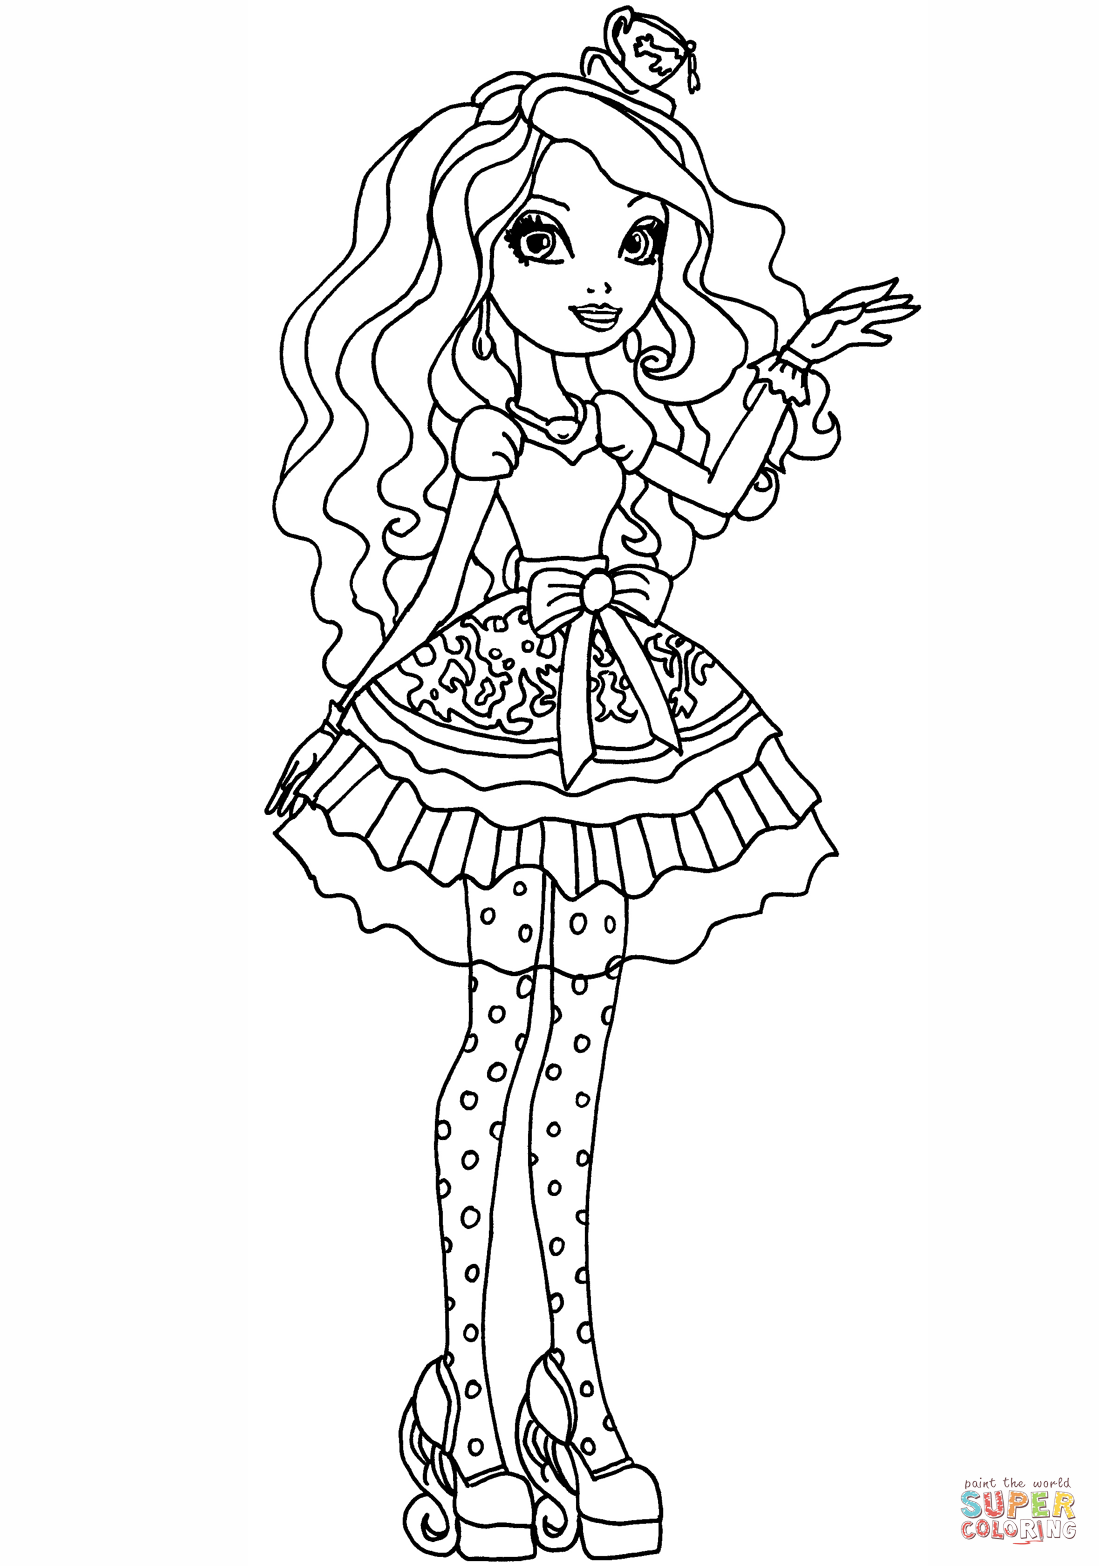 Printable Coloring Pages Ever After High In 2020 Coloring Pages Princess Coloring Pages Free Coloring Pages